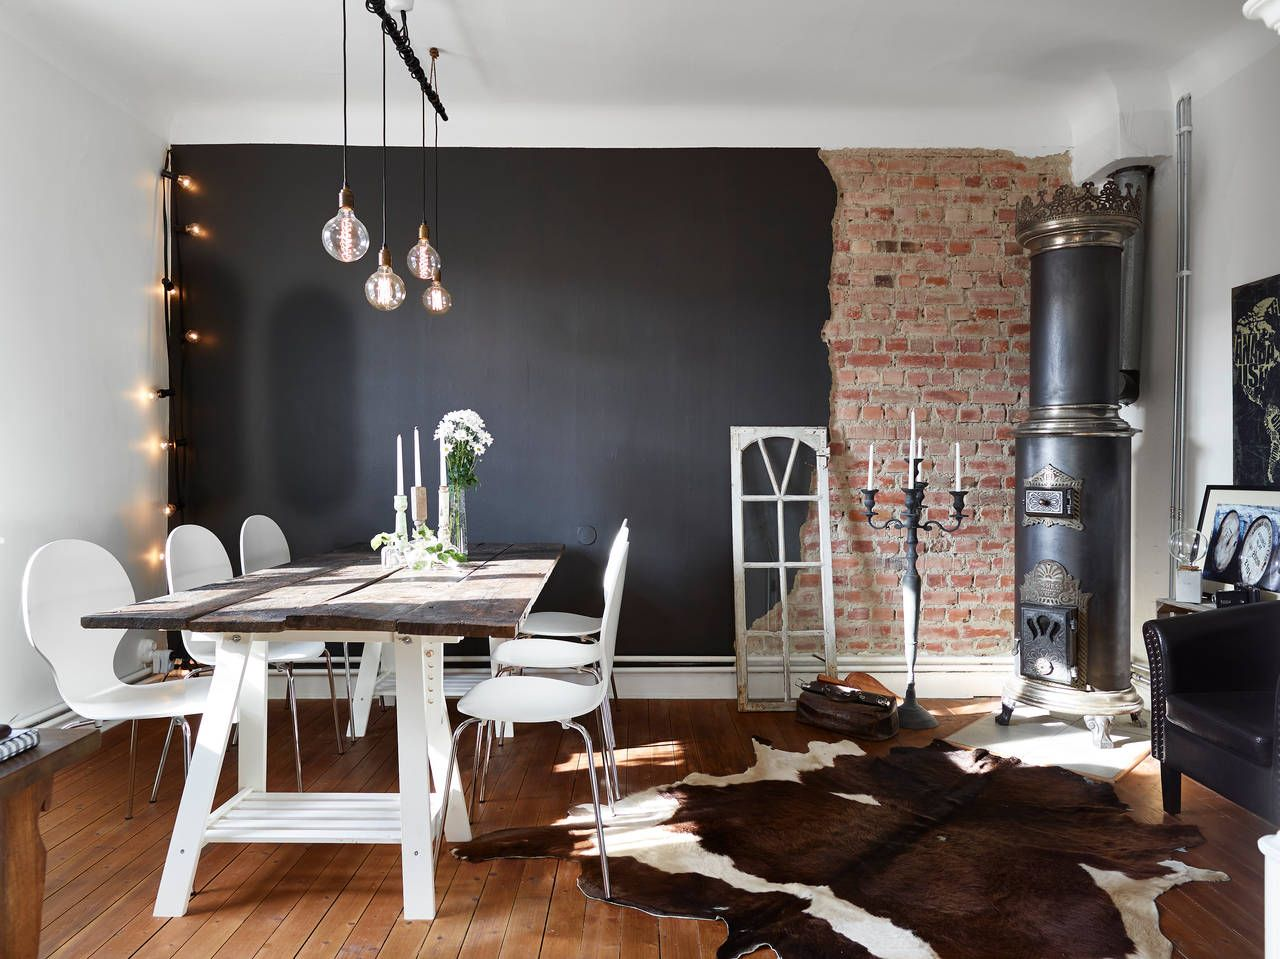 I M In Love With The Black And Brick Wall This Apartment It S So Rough Yet Delicate At Same Time